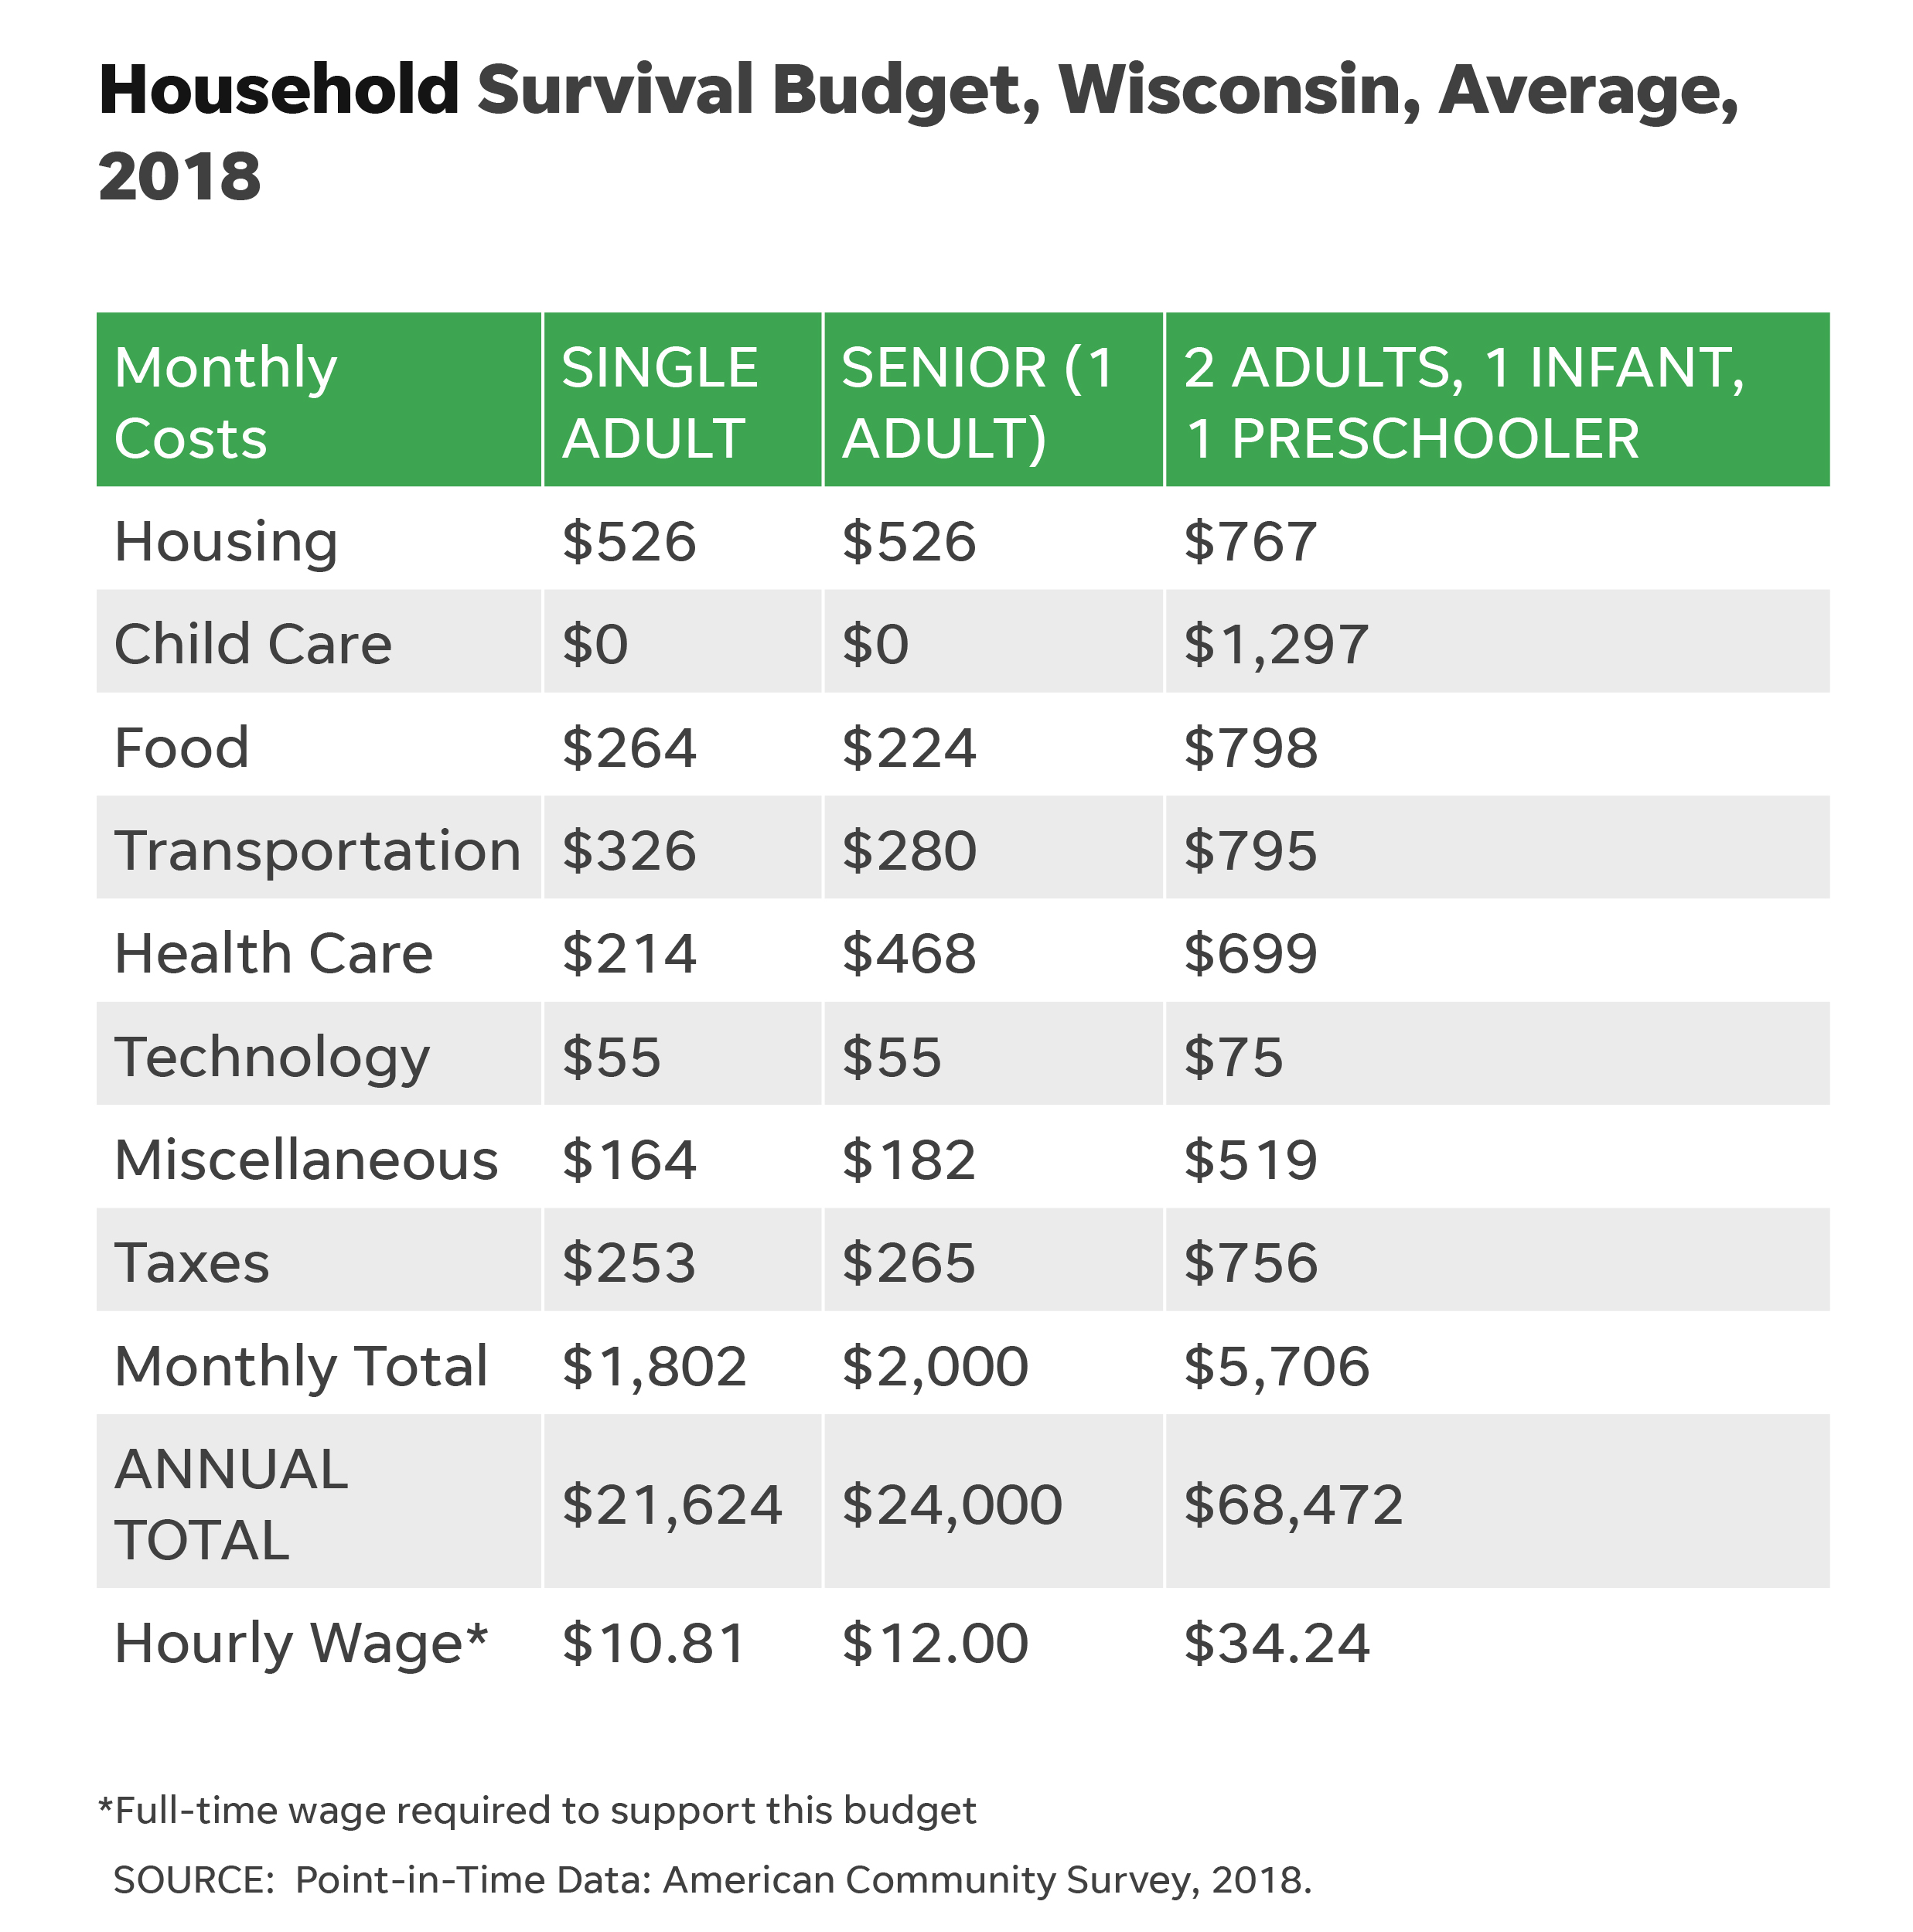 Household Survival Budget Wisconsin Average 2018